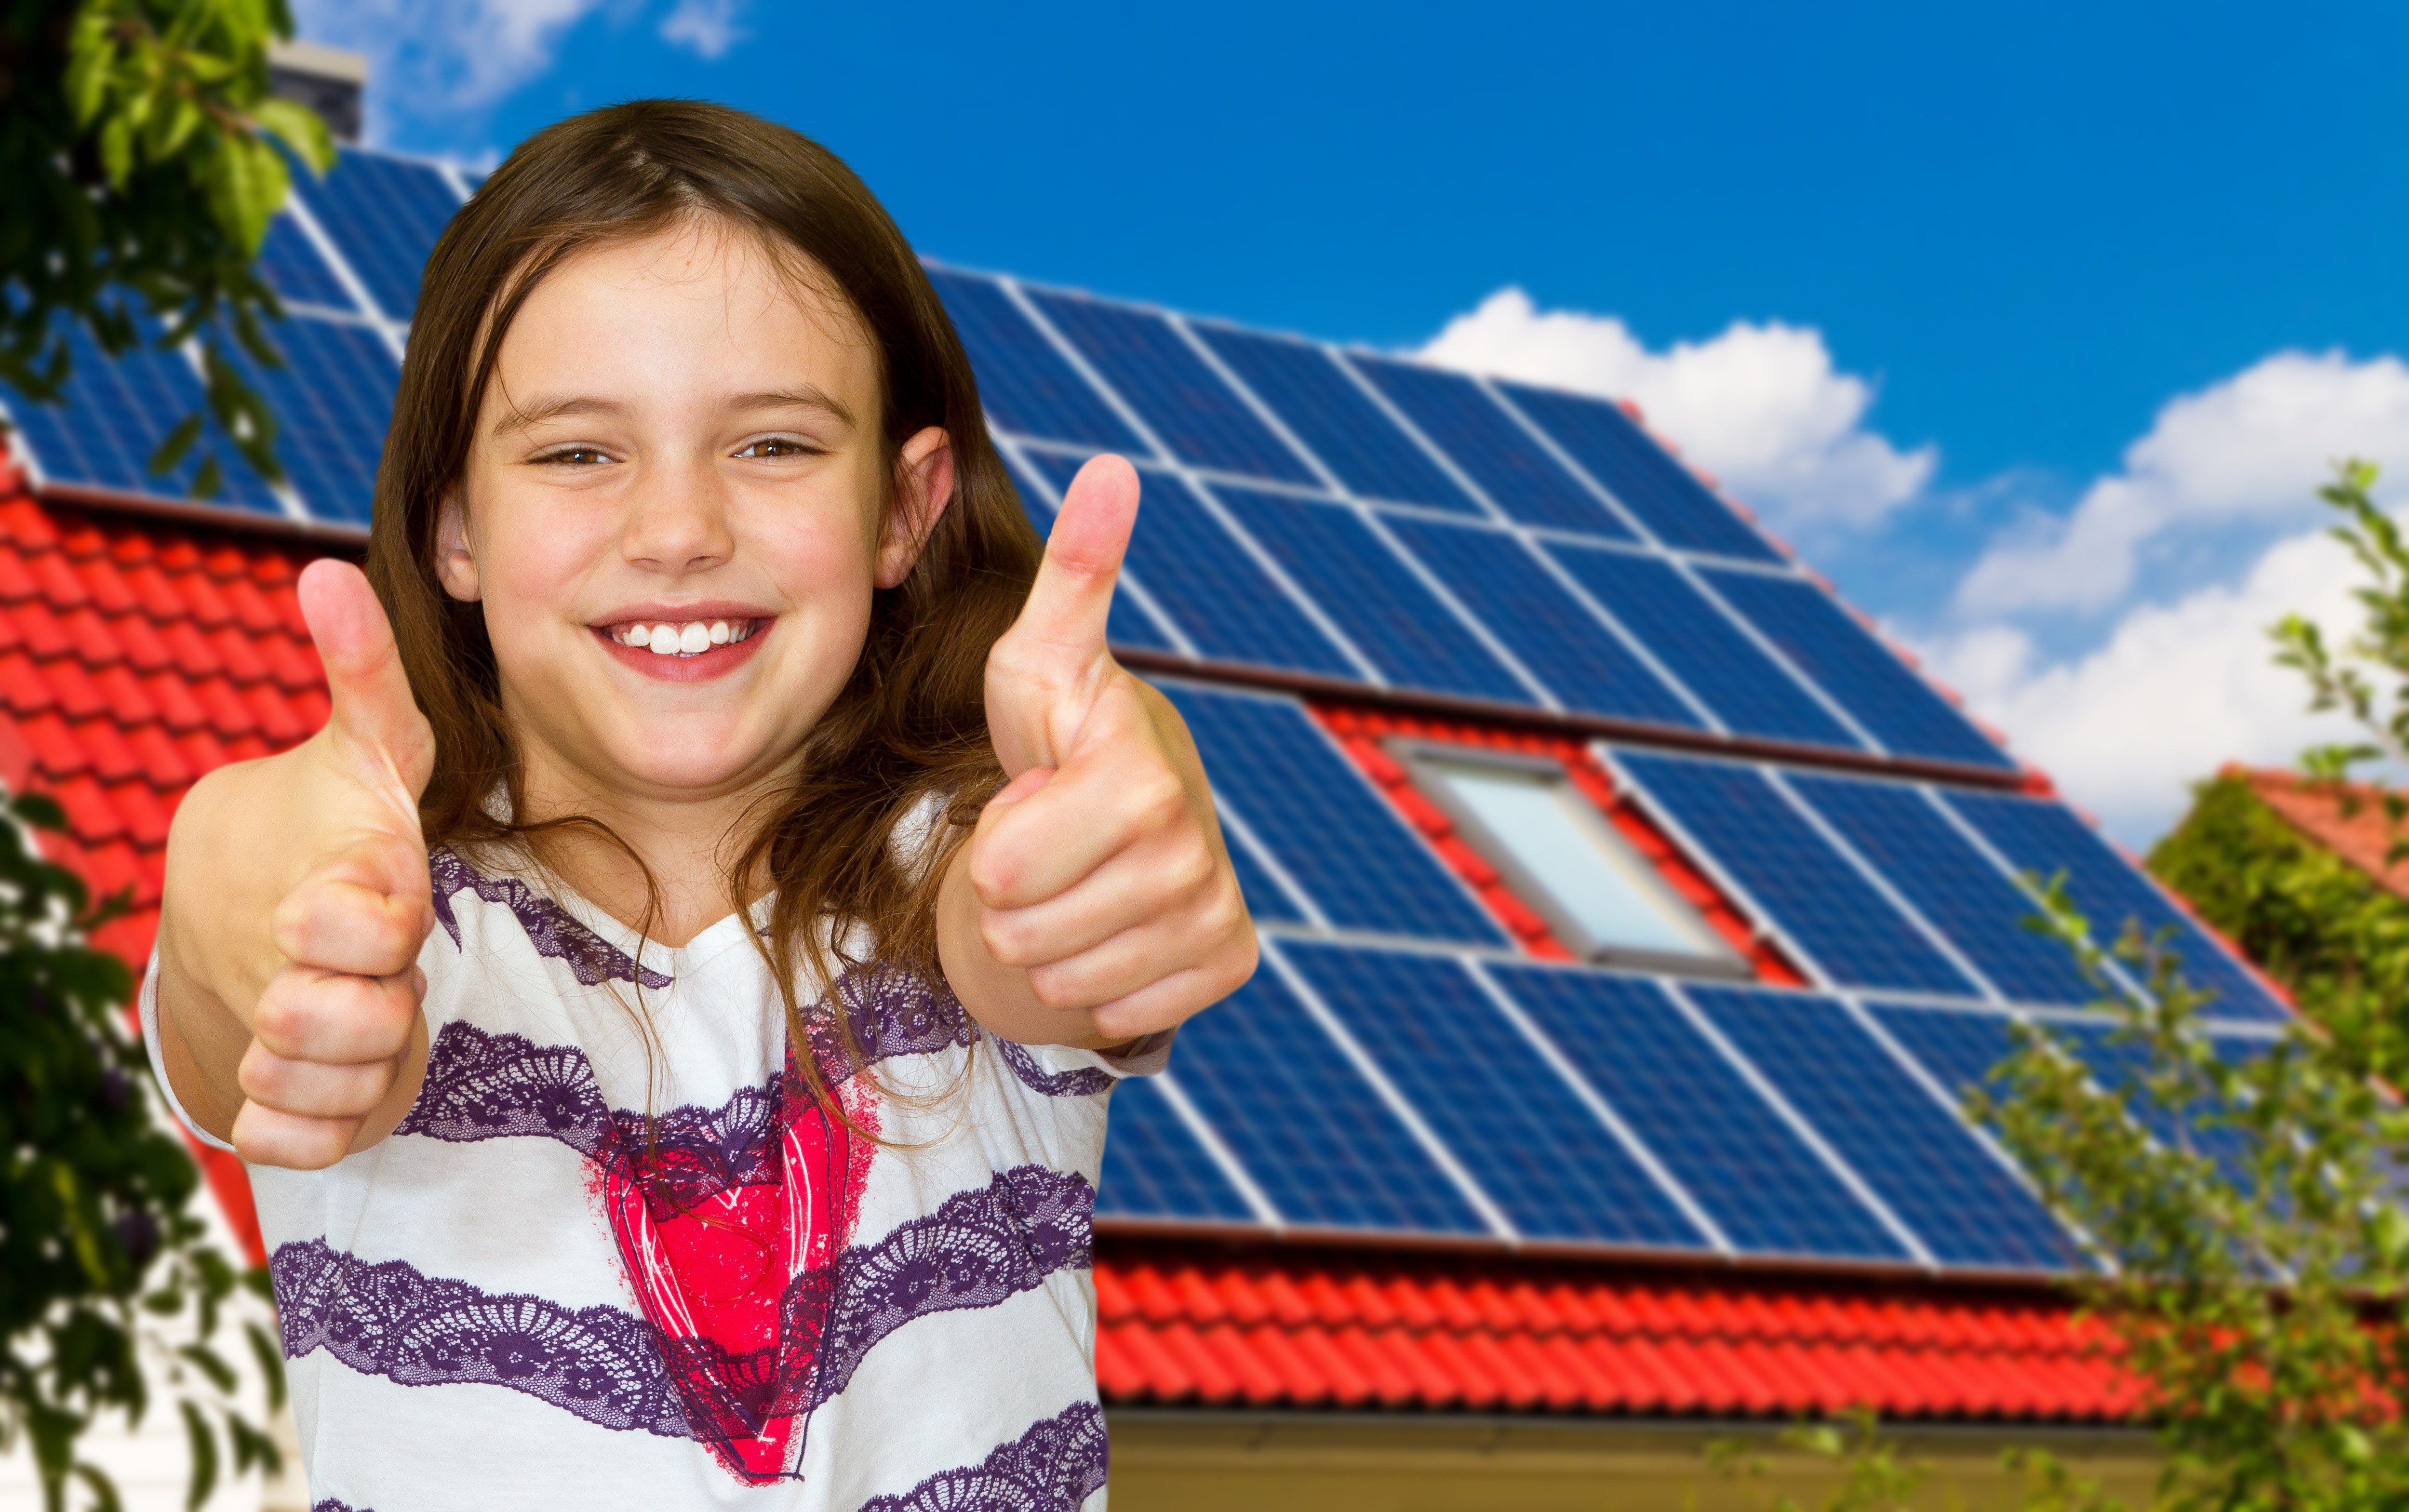 Photo of Schools and solar power: a match made in heaven